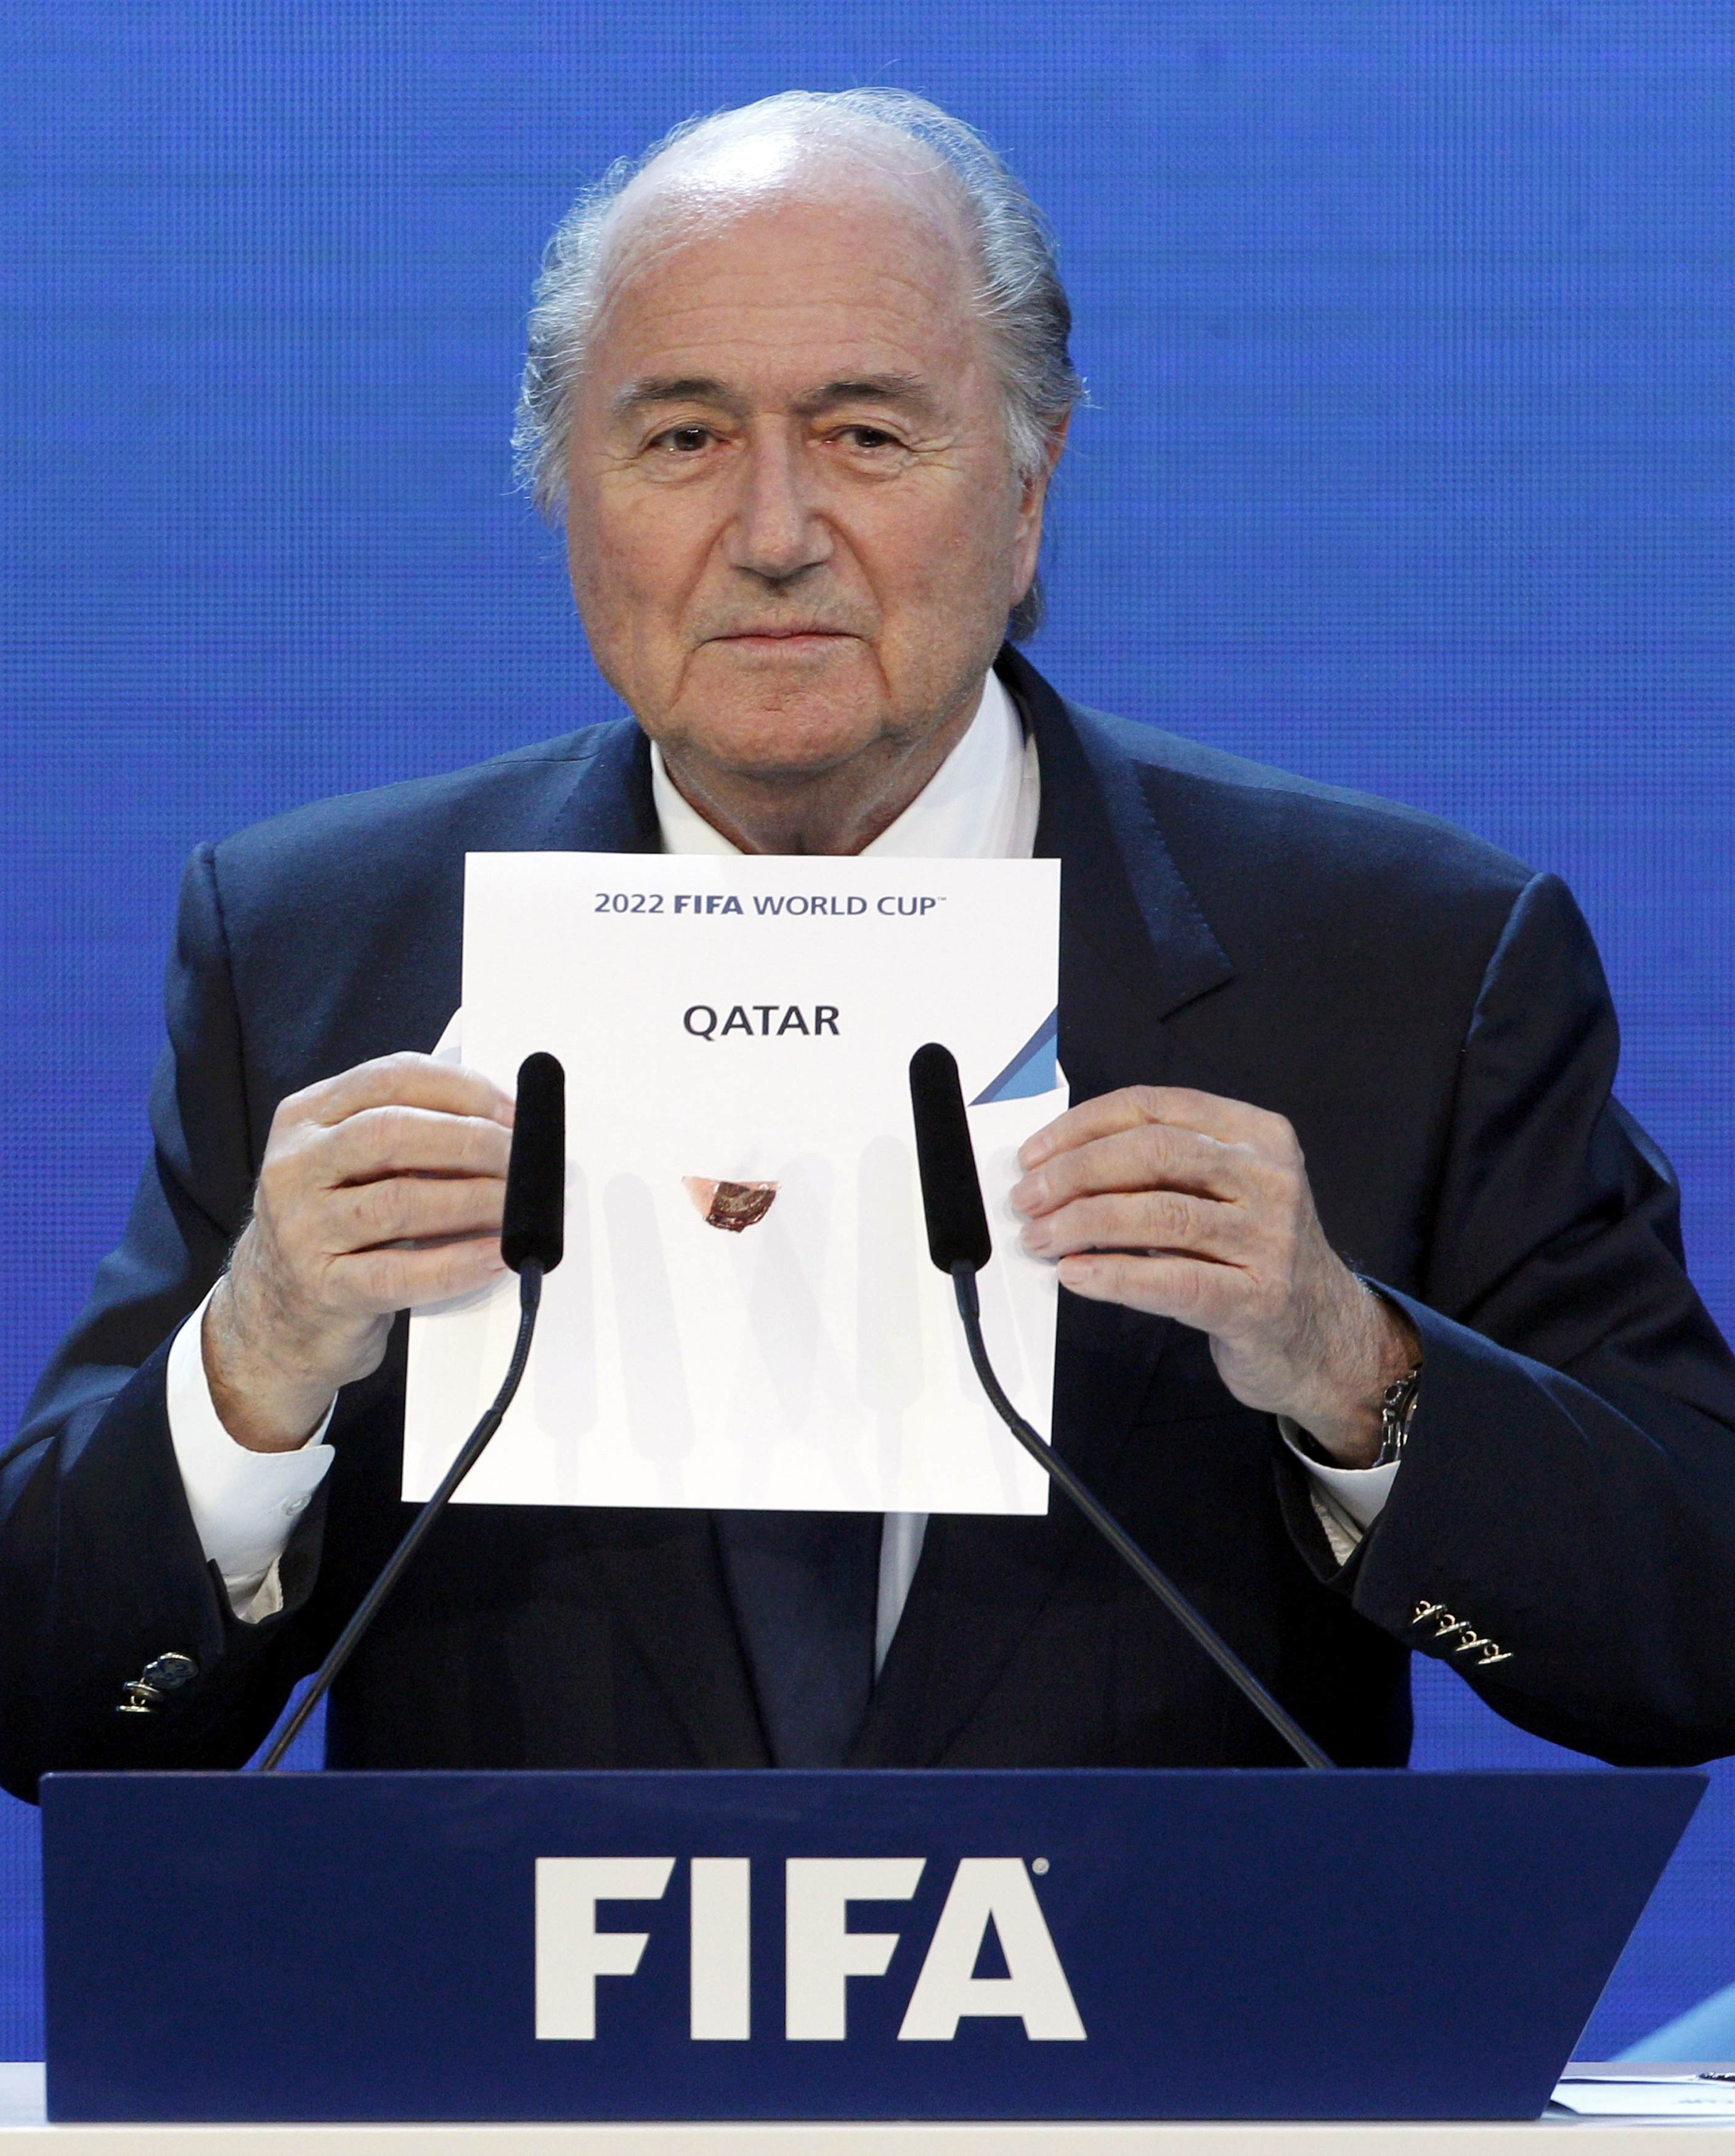 Corrupt or Not, FIFA Says World Cups Will Go Ahead